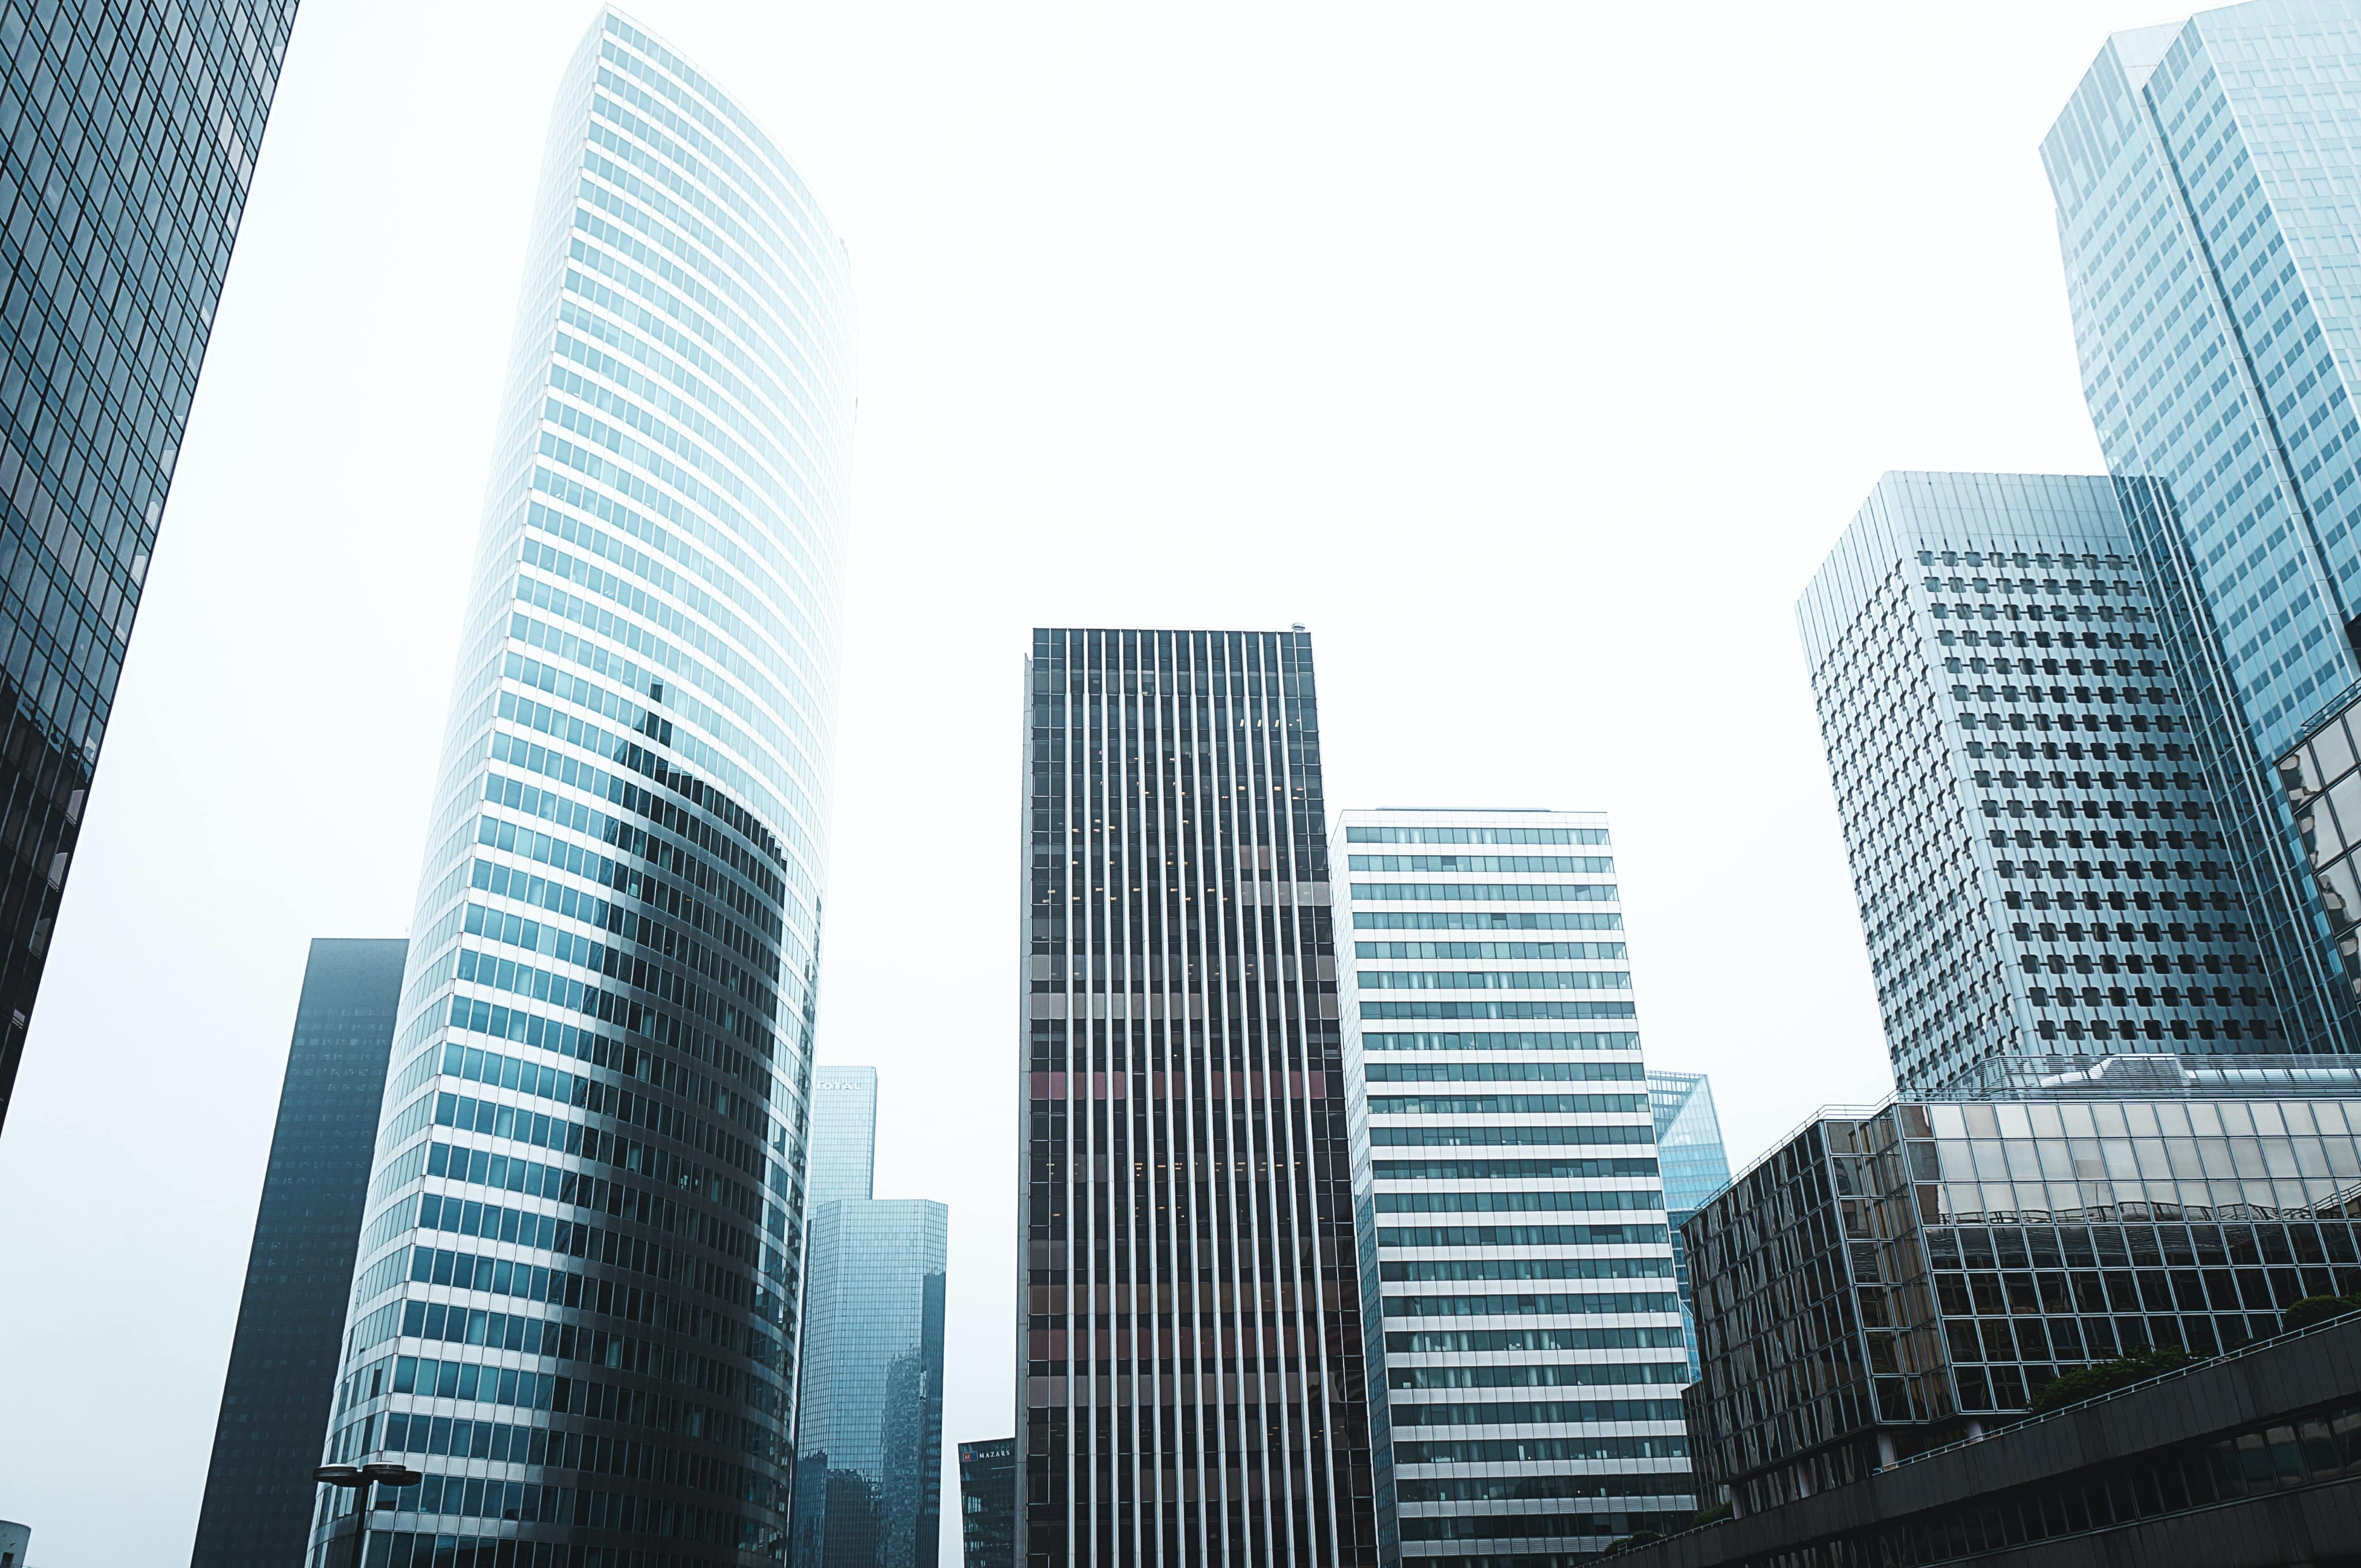 image of buildings against a skyline